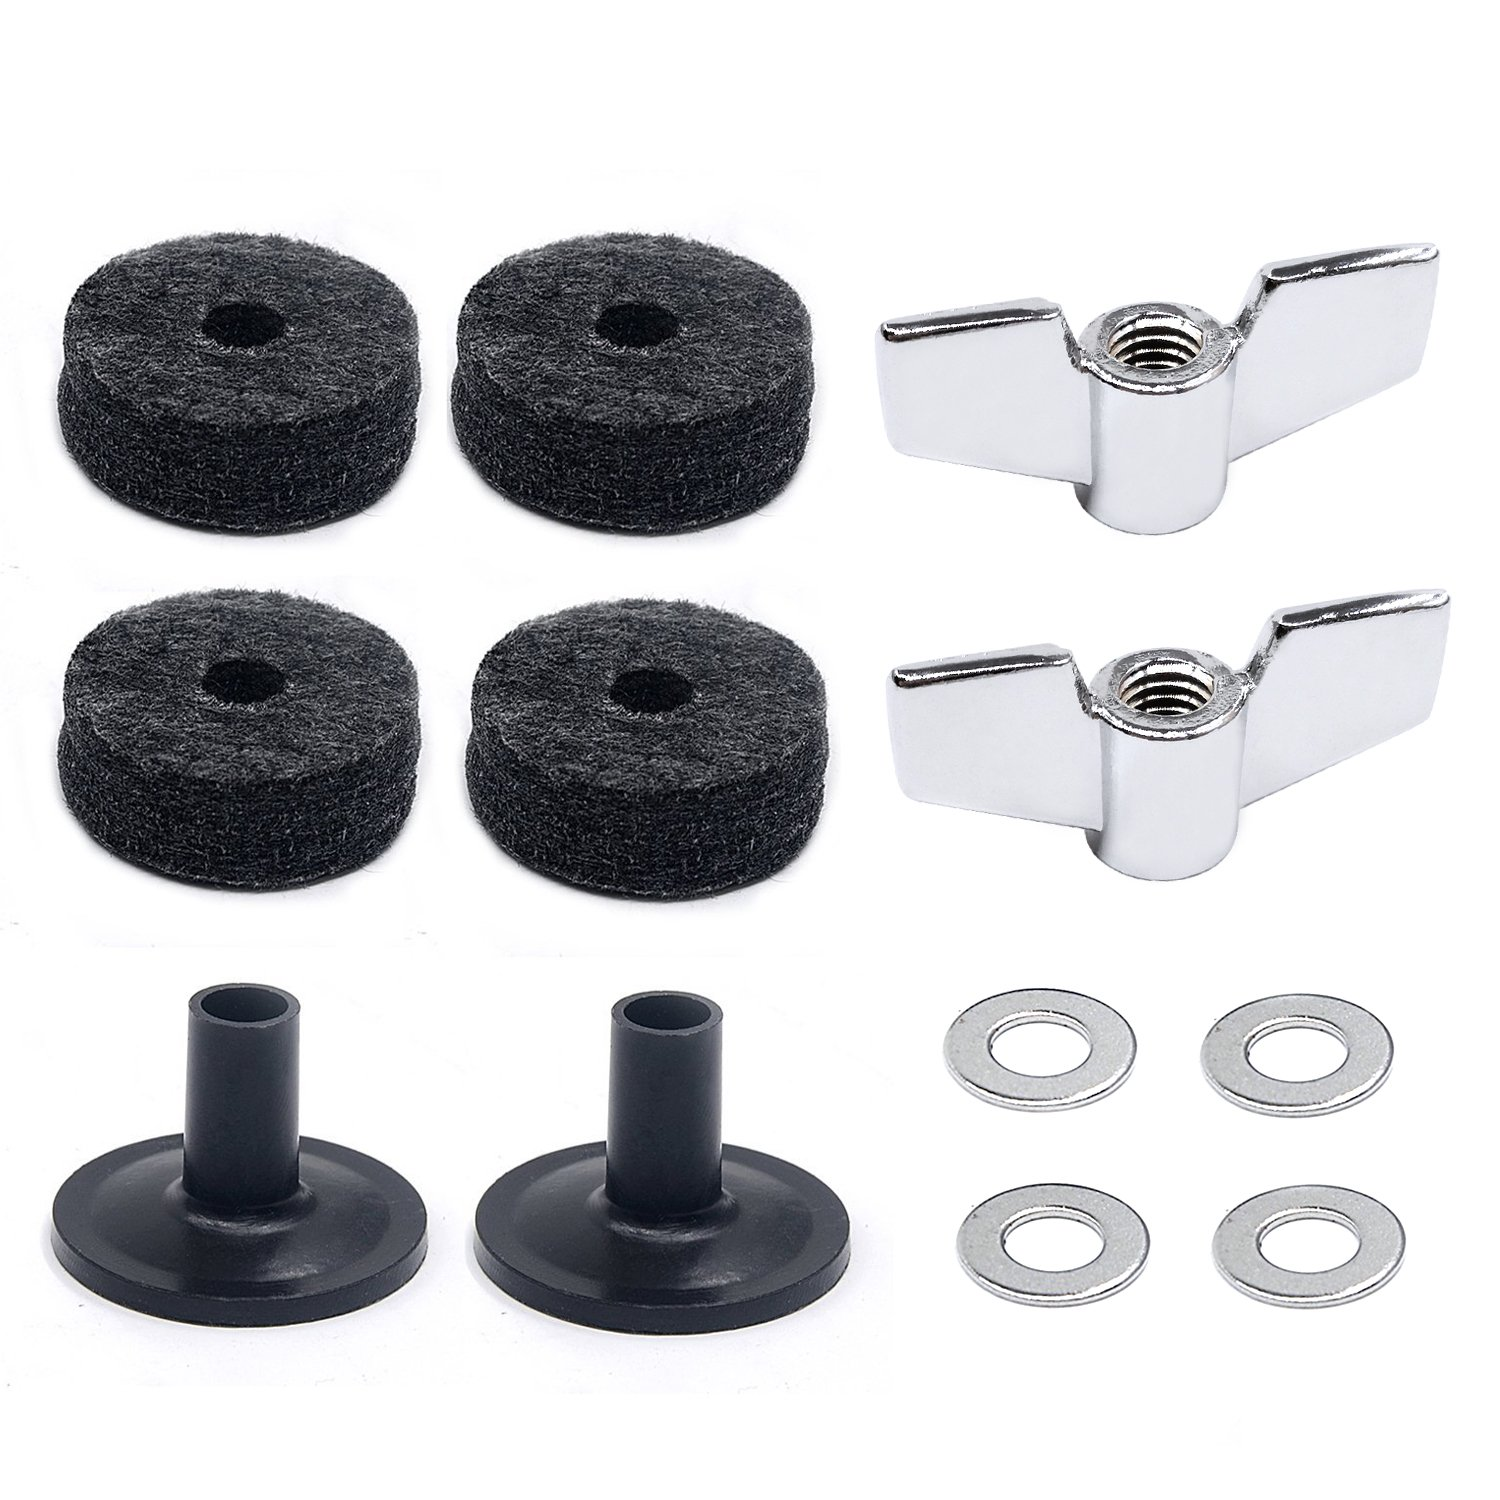 Lanpu Drum Accessories Kit: Cymbal Felts, Cymbal Sleeves, Wing Nuts